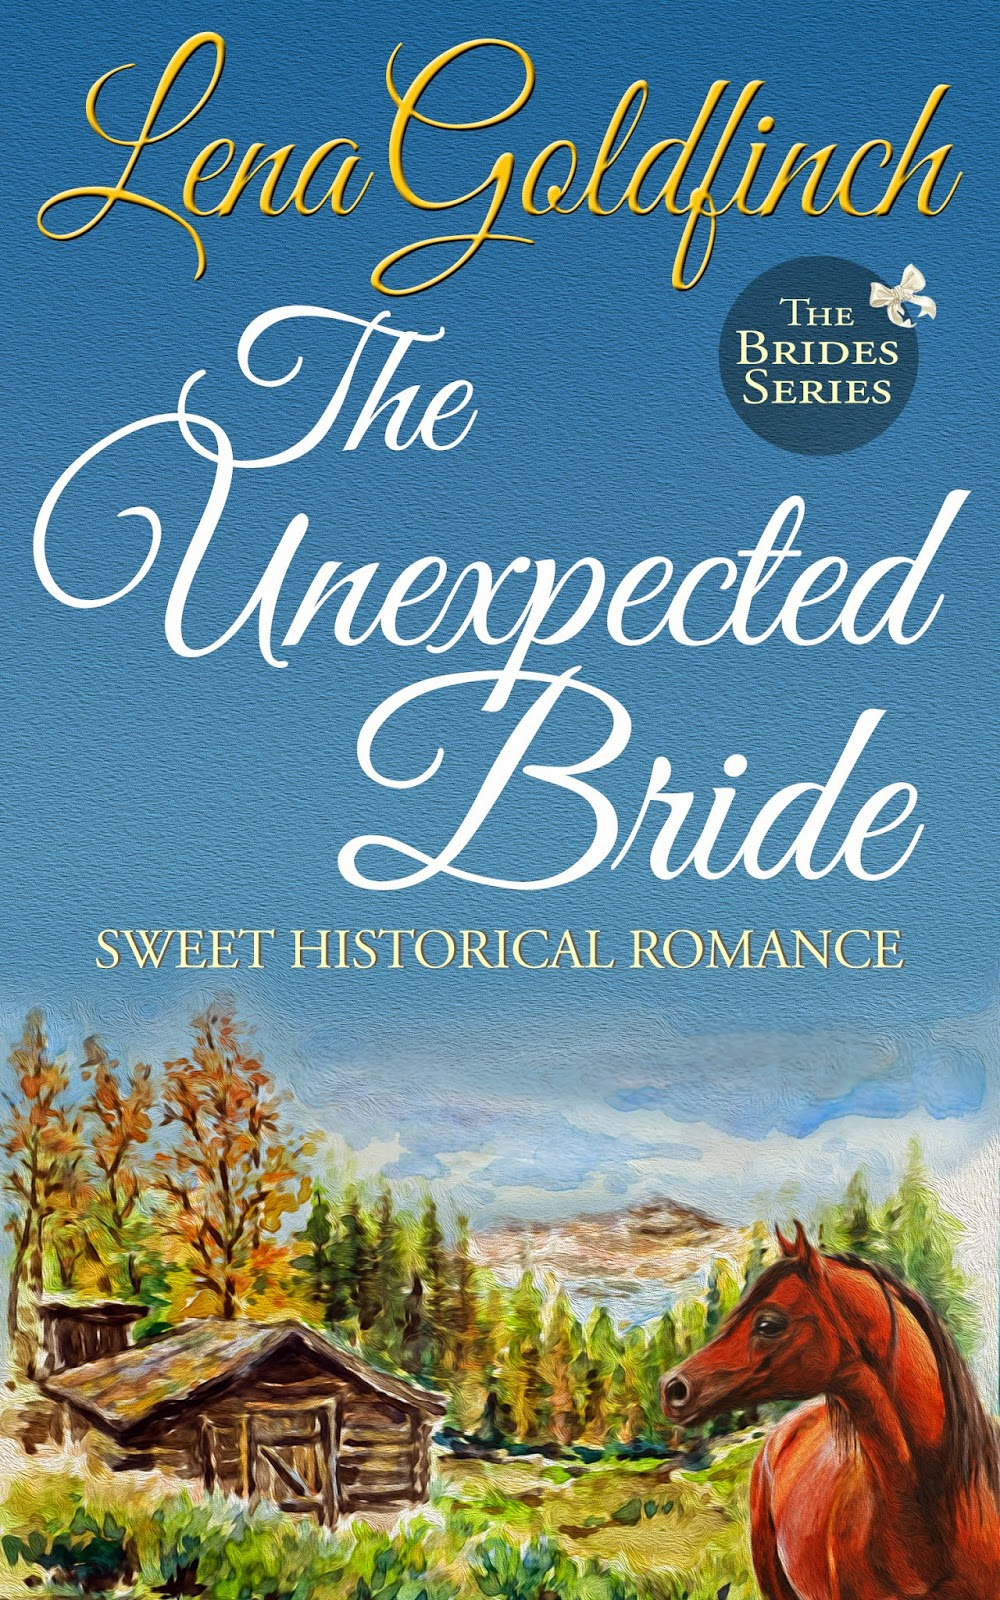 Lena Goldfinch THE UNEXPECTED BRIDE